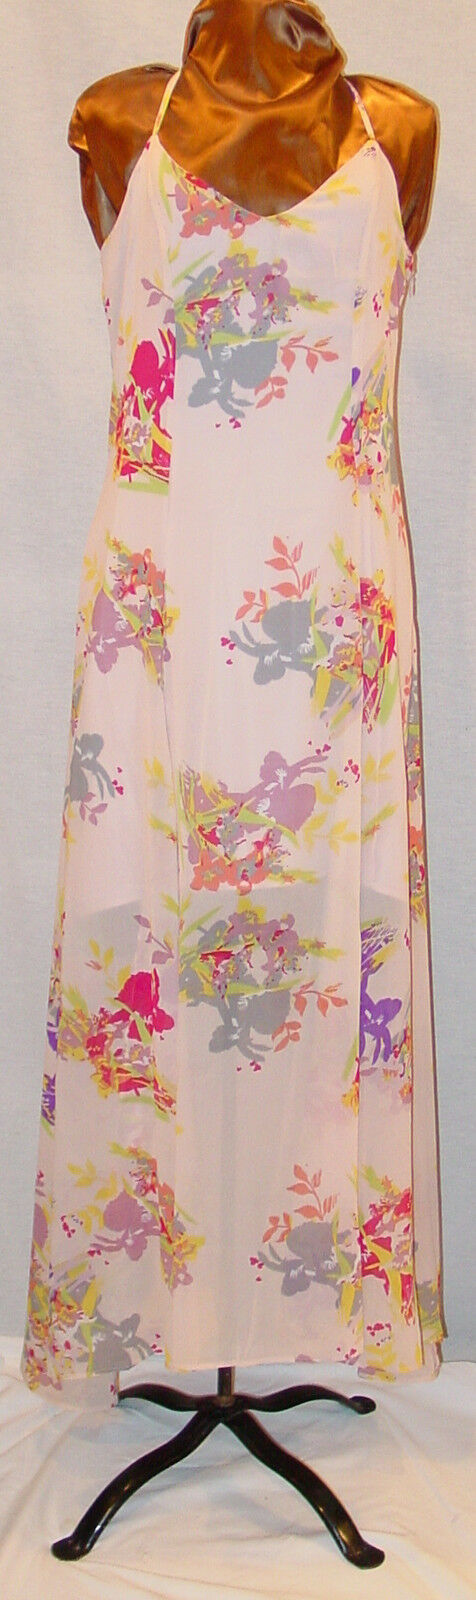 W118 BY WALTER BAKER PINK FLORAL LONG SPAGETTI STRAP SUMMER DRESS MEDIUM NWT